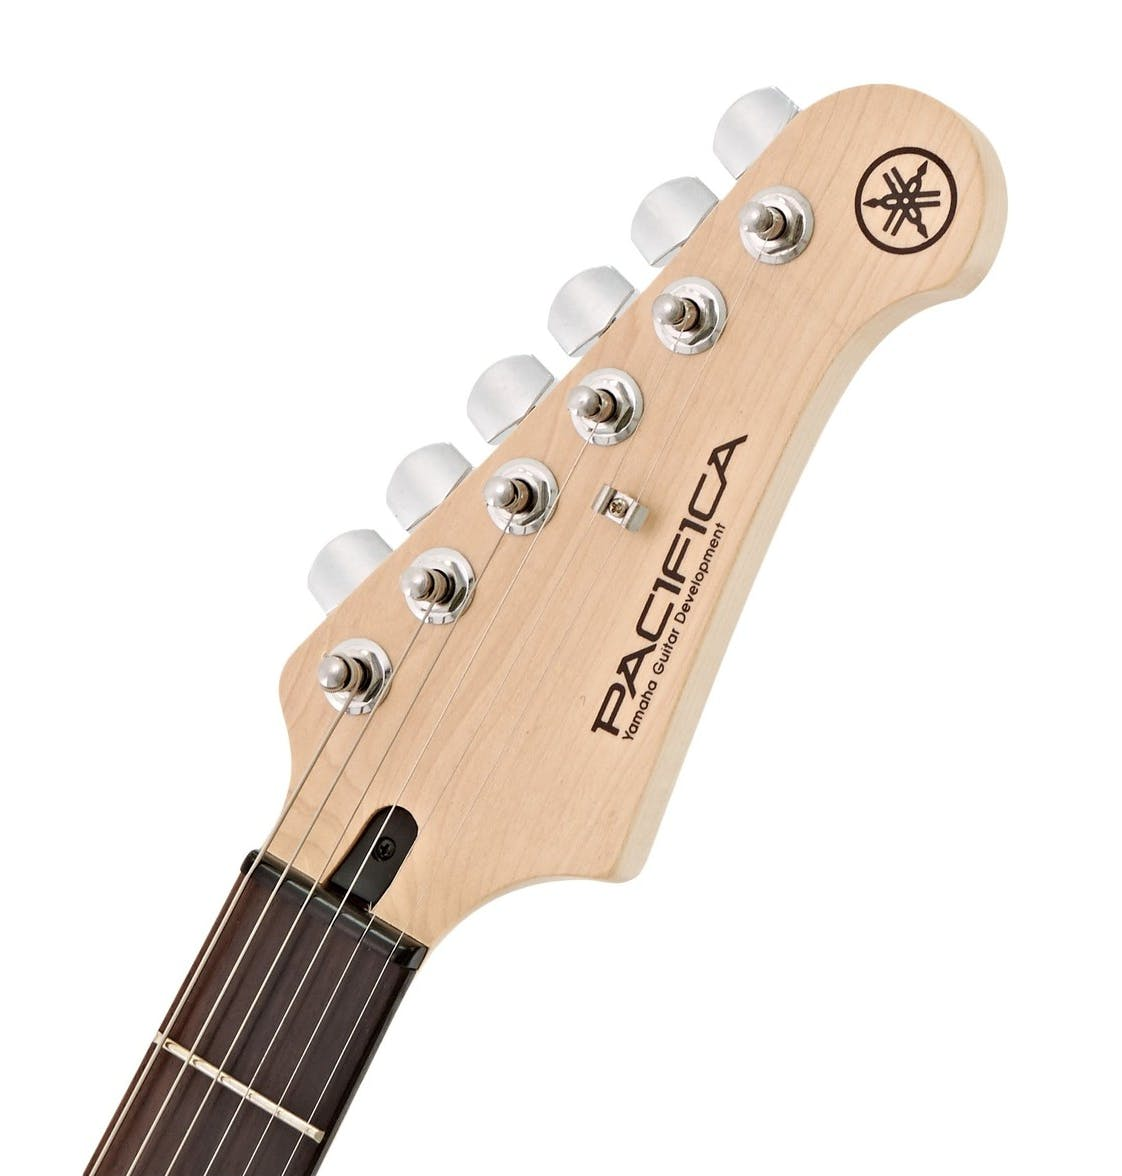 yamaha pacifica 112v wiring diagram opel astra g electric guitar guitars t schematic and diagrams double hum strat